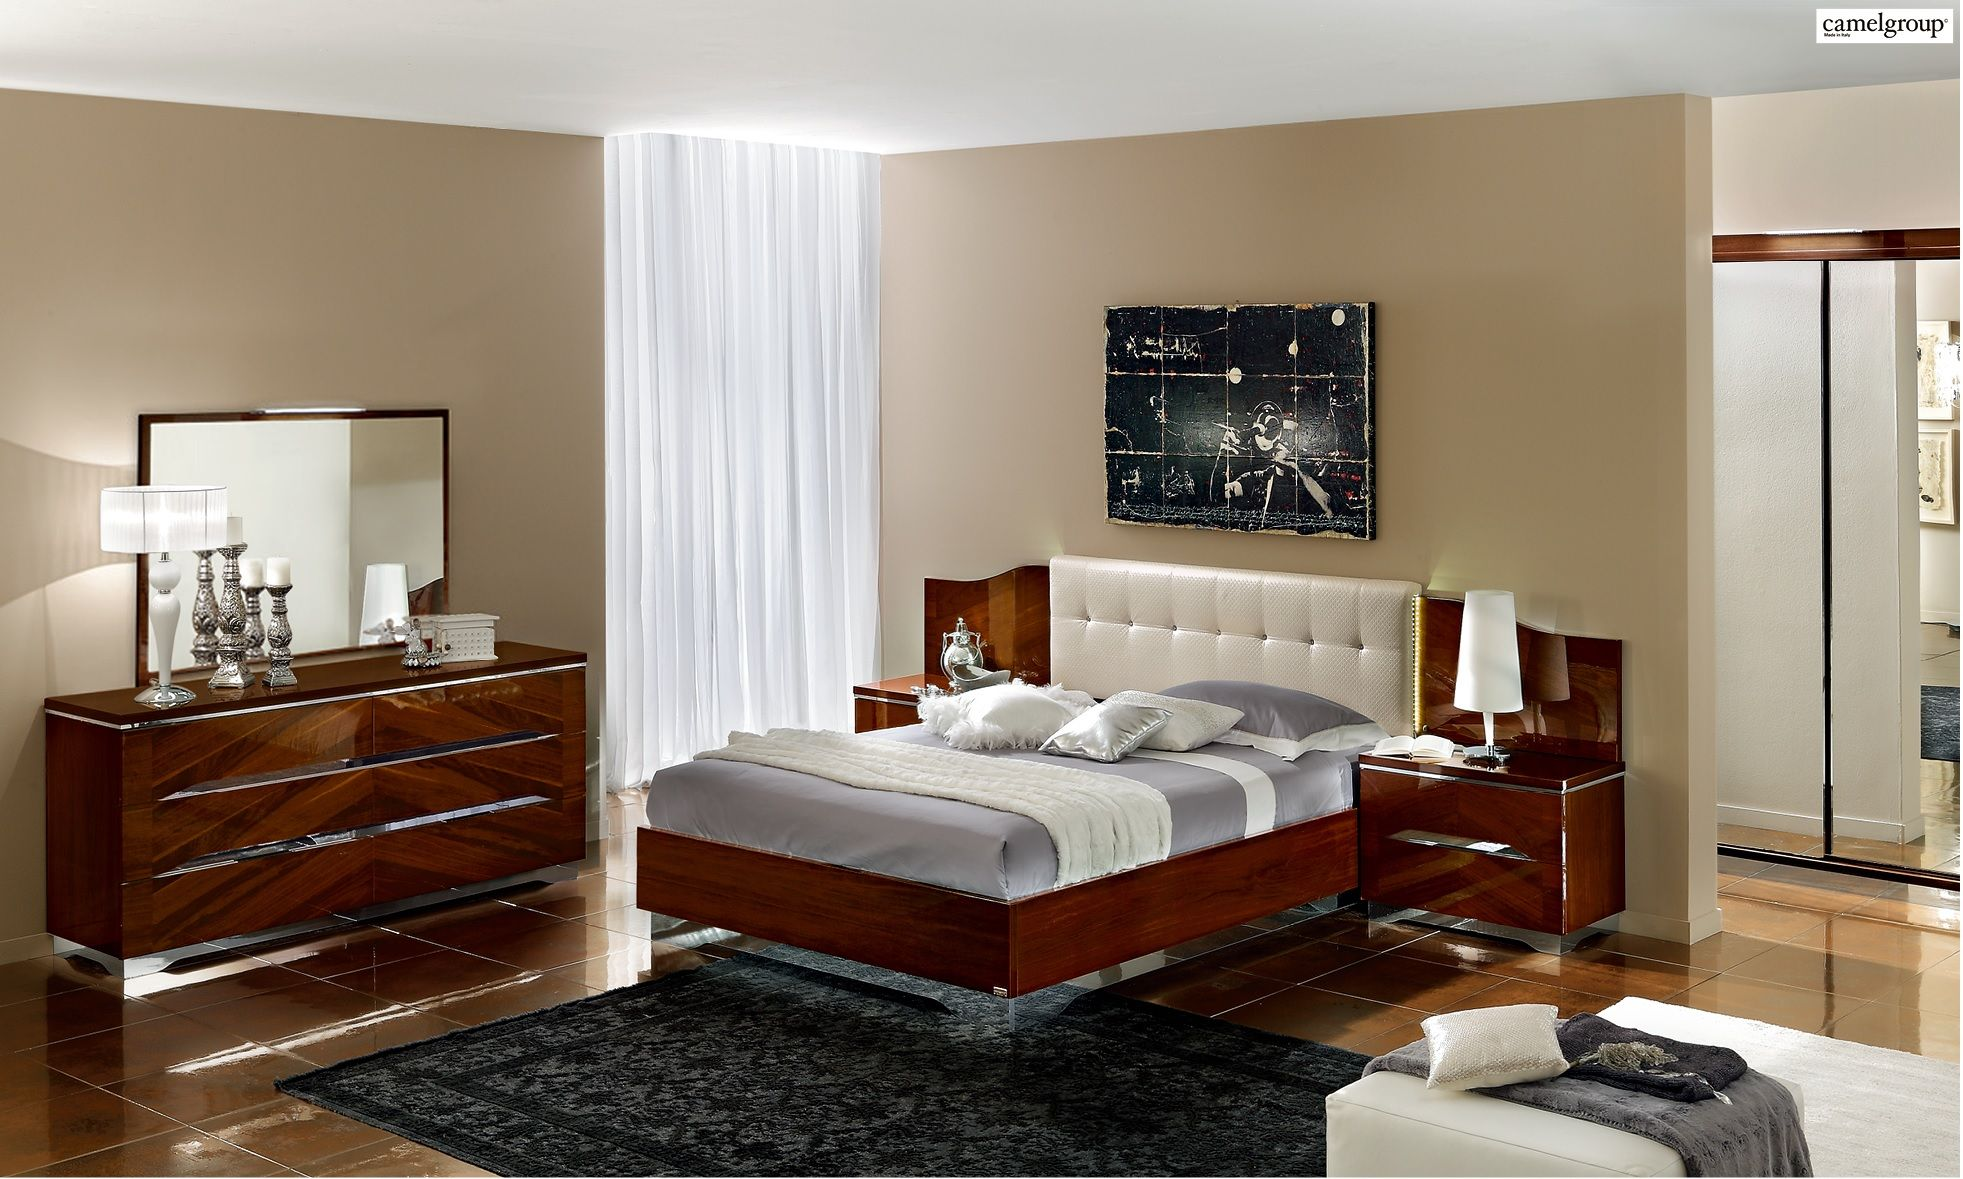 Matrix bedroom set in brown by camelgroup made in italy products